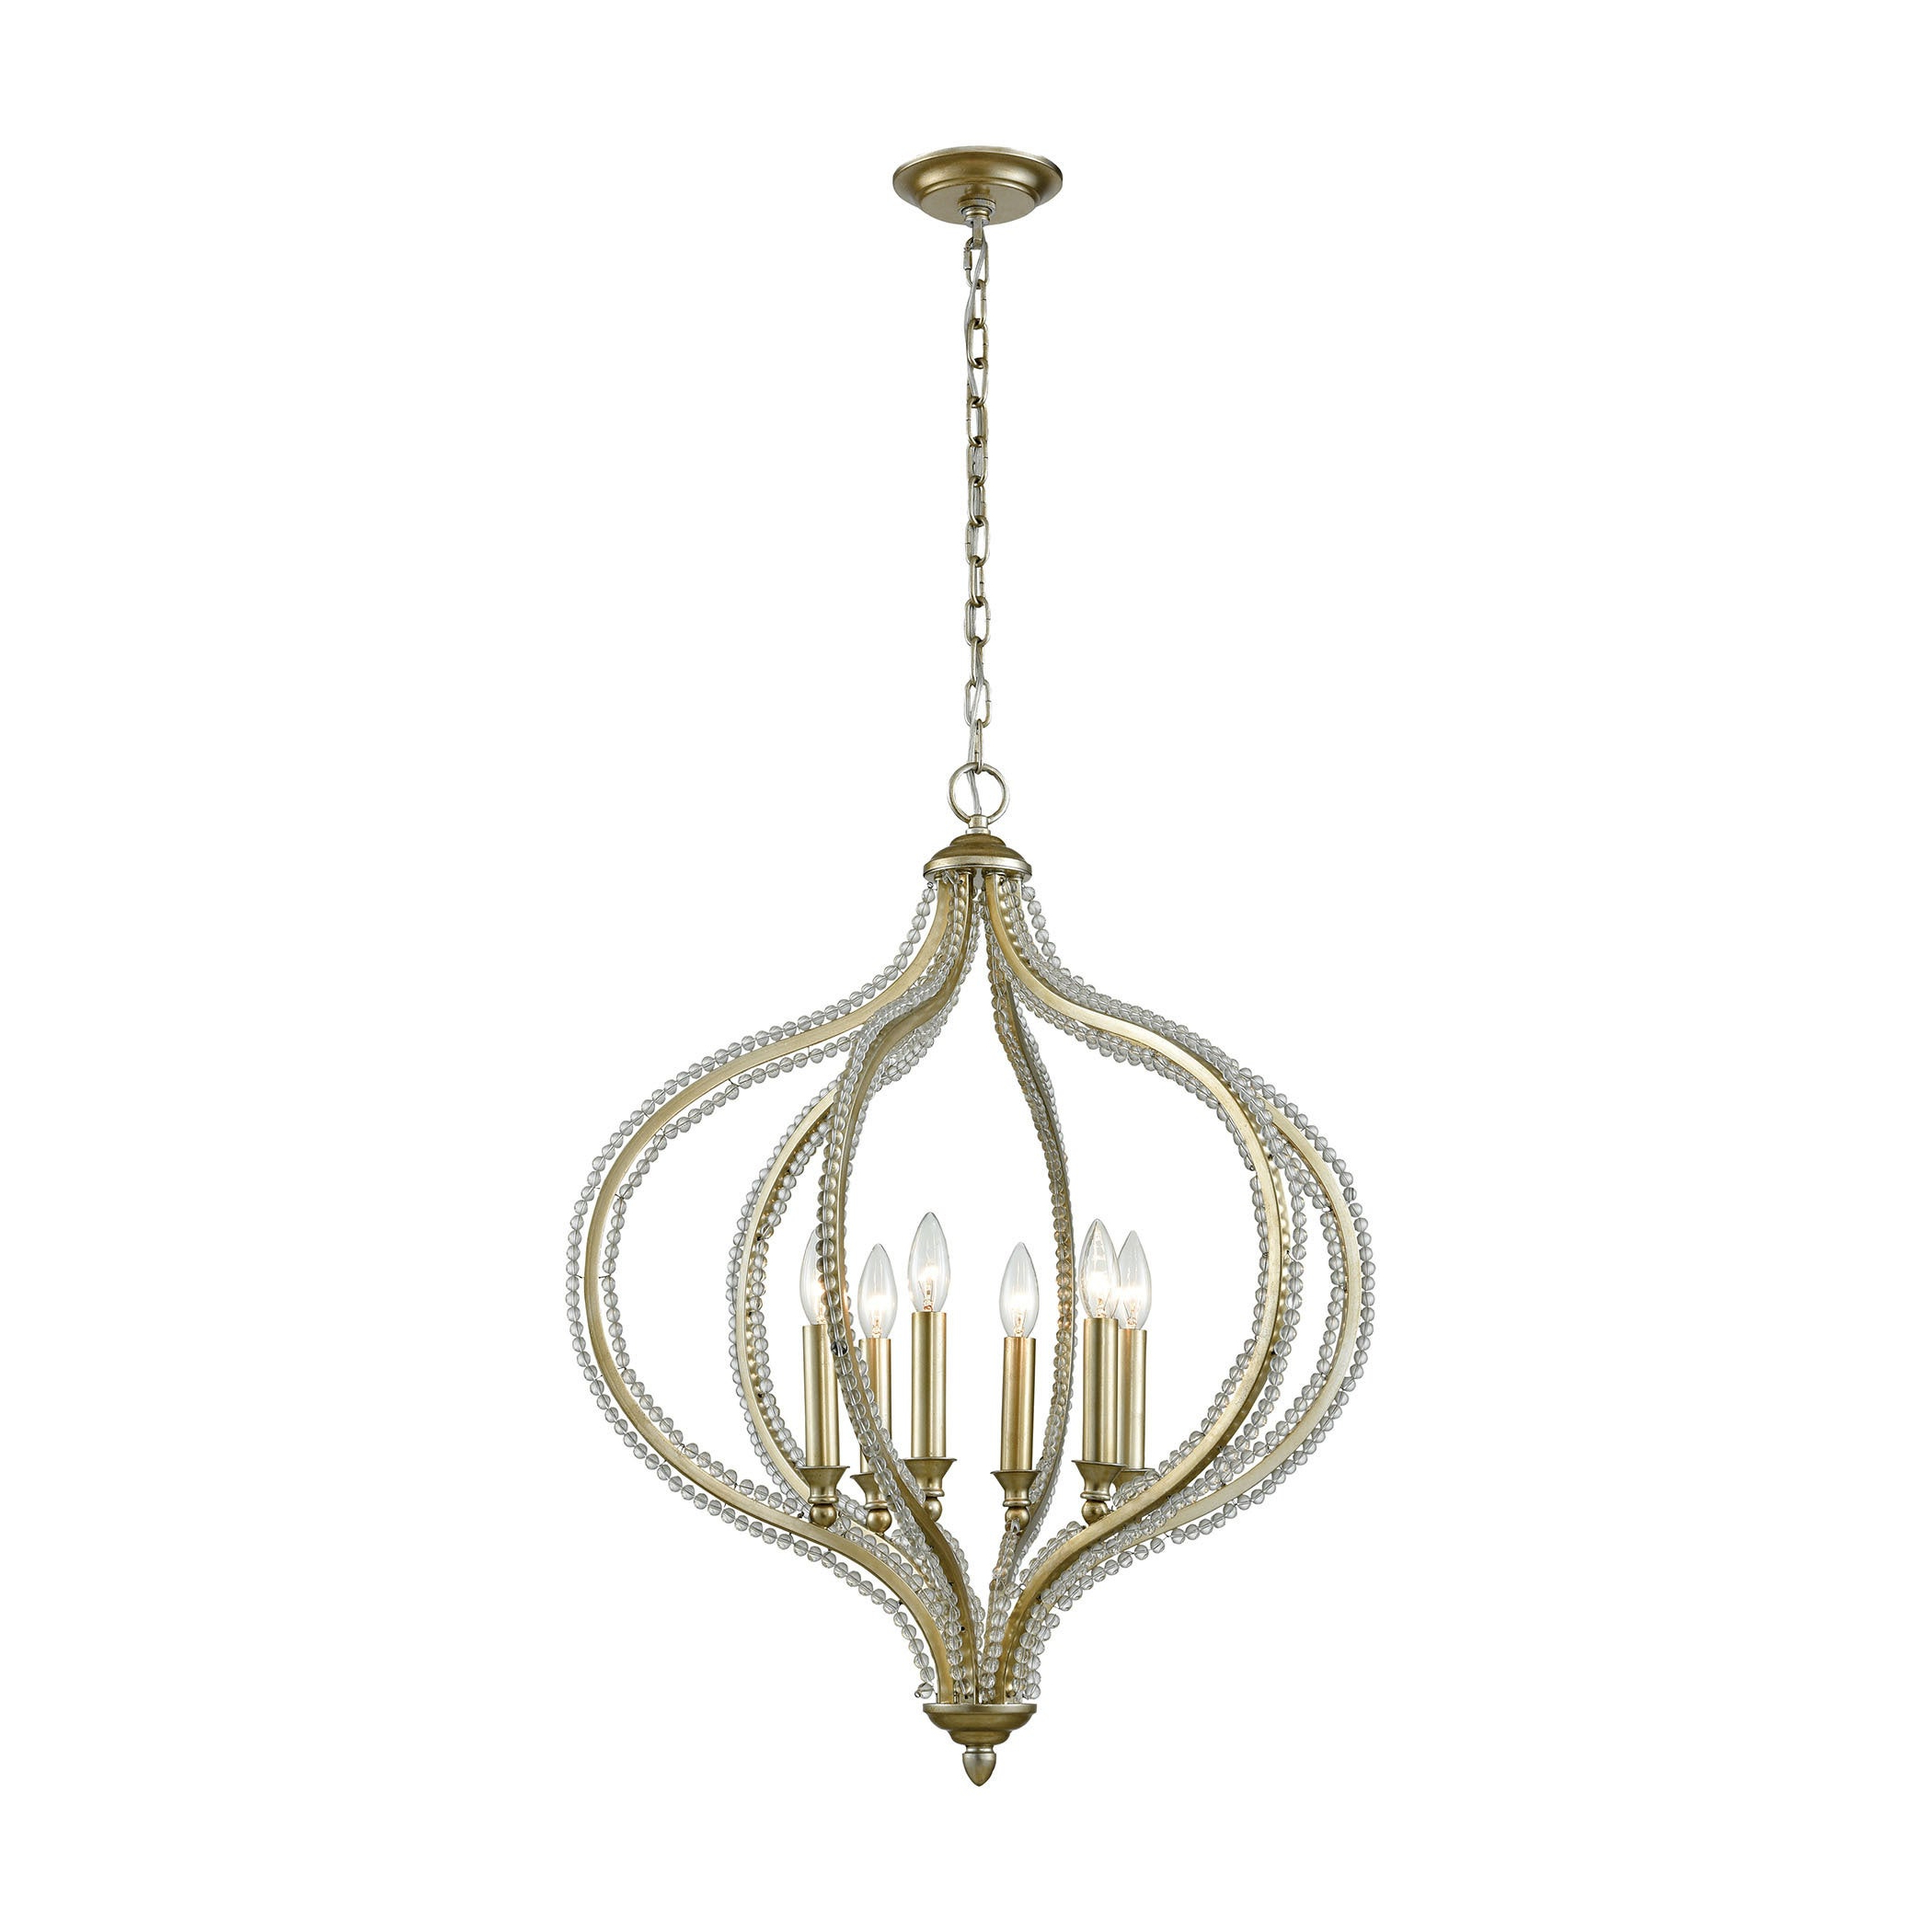 Bennington 6 Light Candle Style Chandeliers For Most Up To Date Bennington 6 Light Pendant, Aged Silver (View 20 of 25)